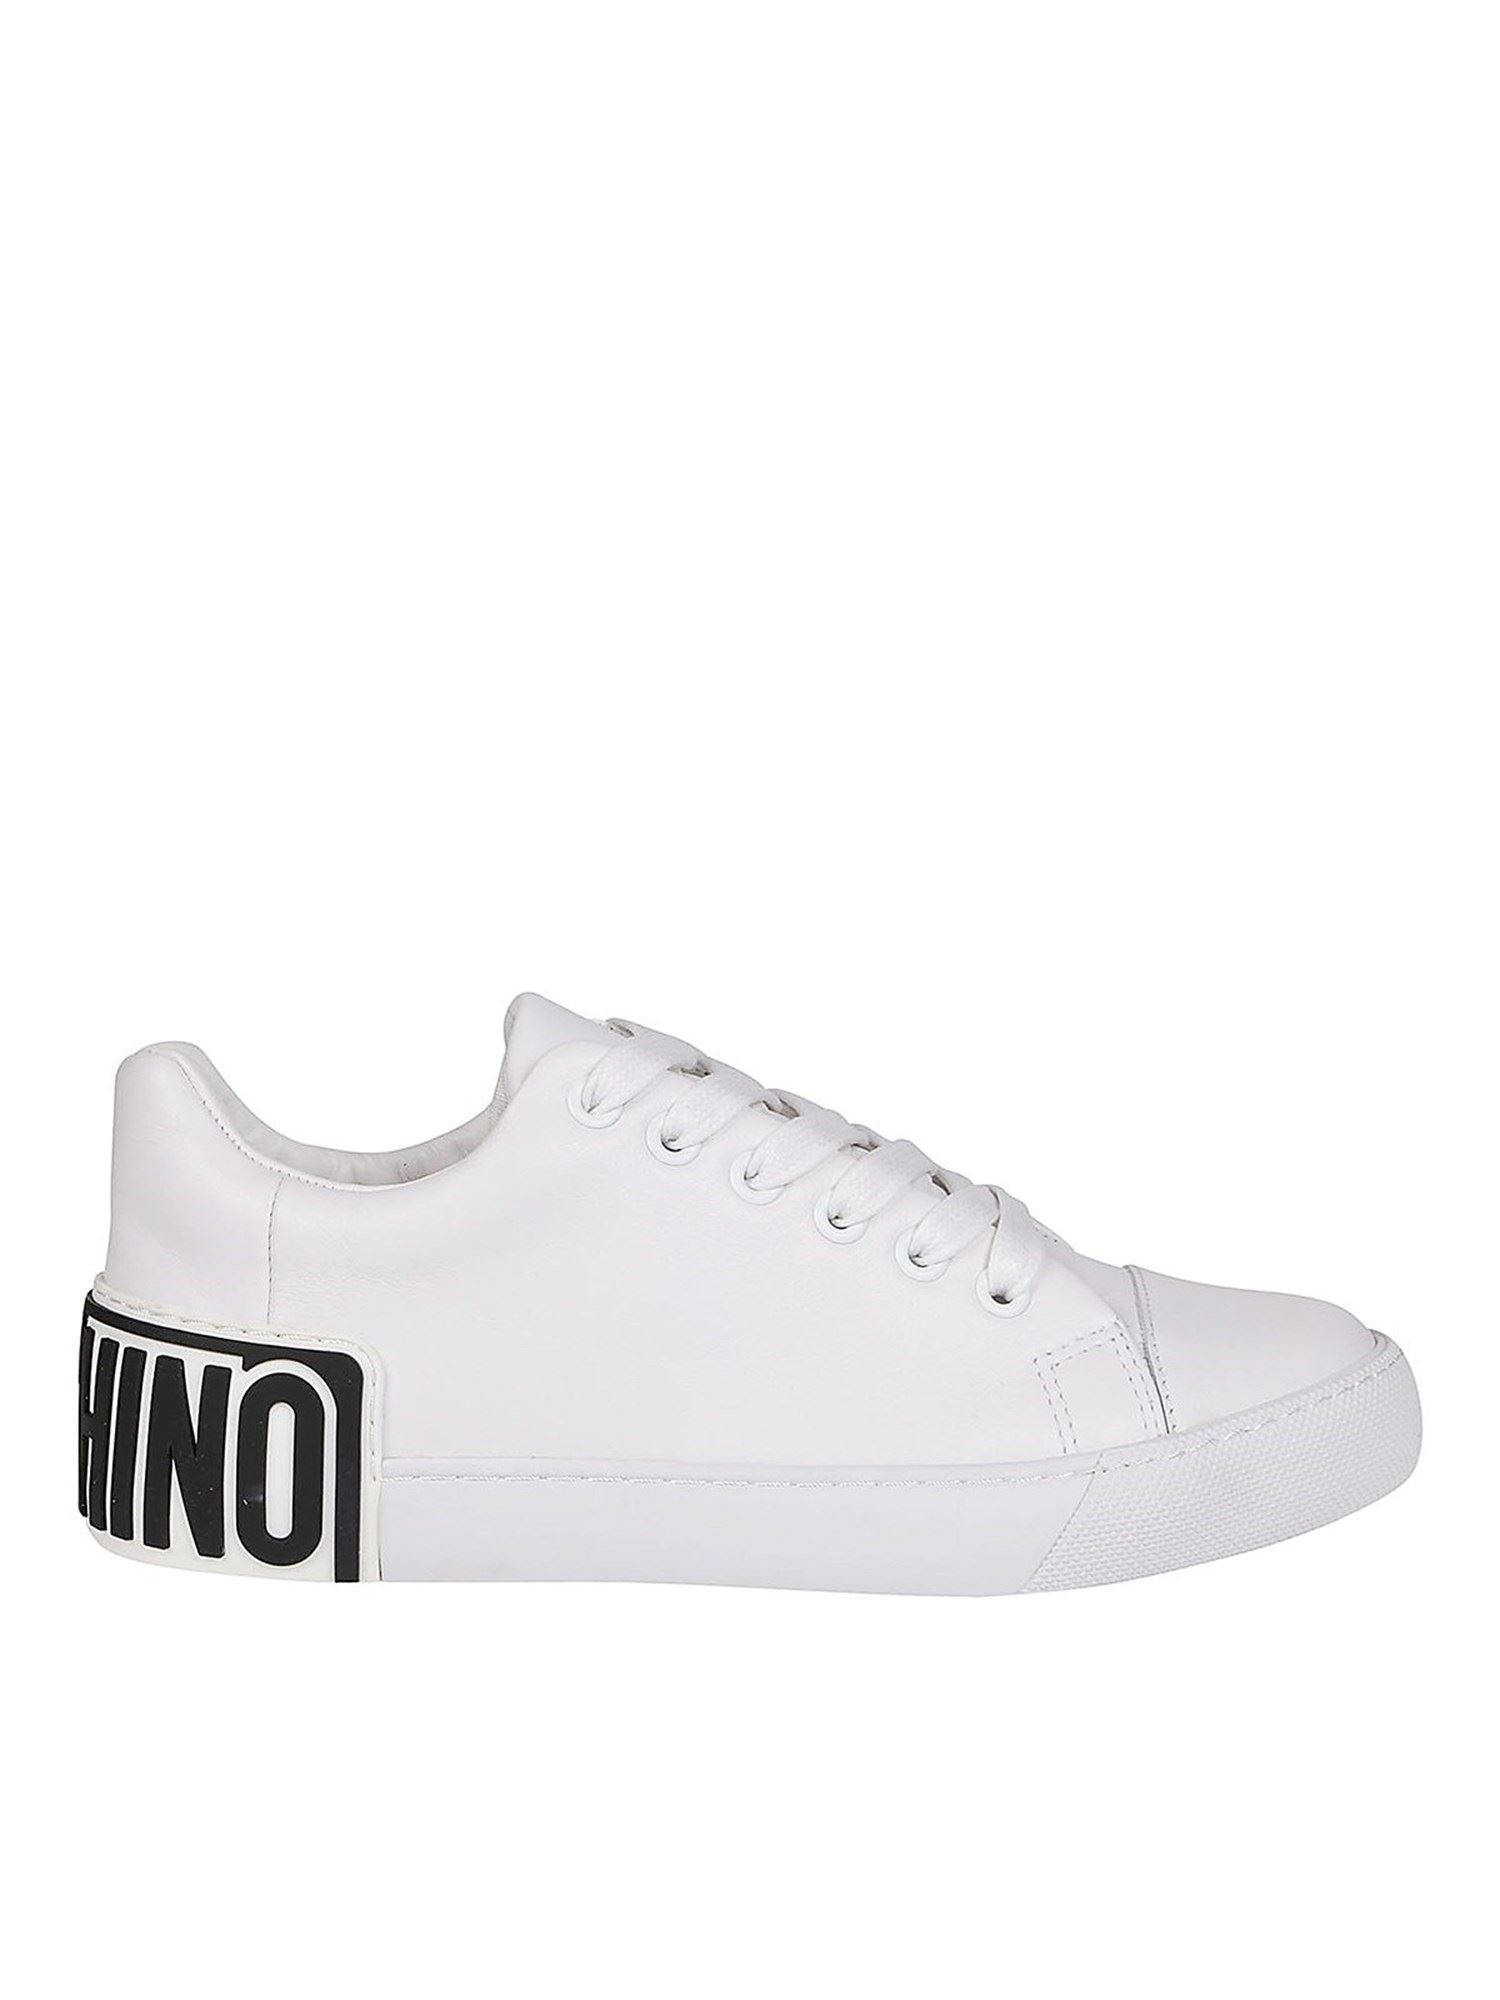 Moschino Leathers RUBBER LOGO PATCH SNEAKERS IN WHITE